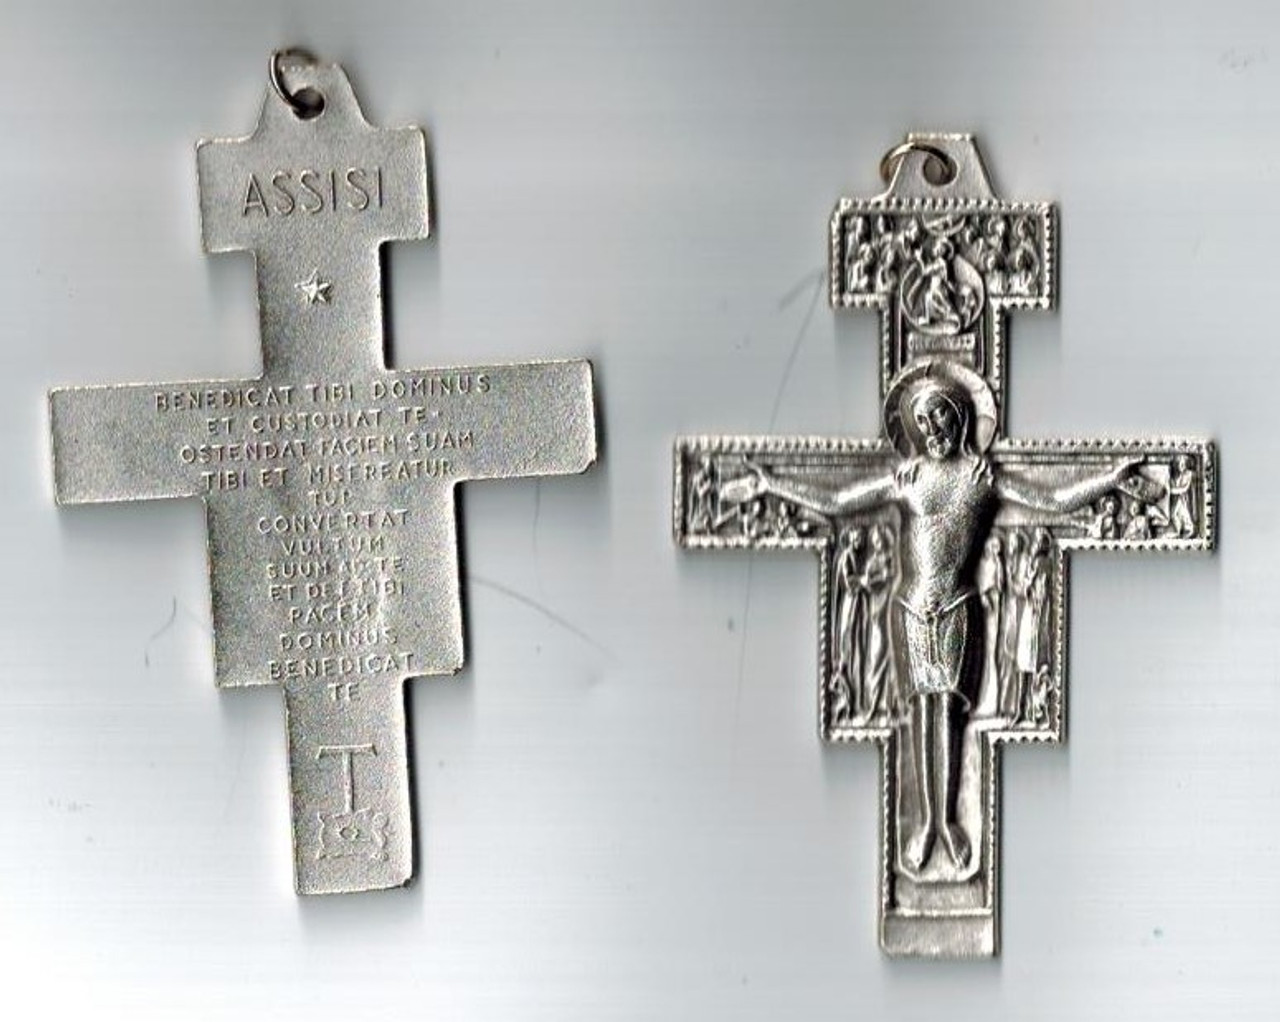 2.5 inch pewter San Damiano Crucifix from Assisi, with or without cord